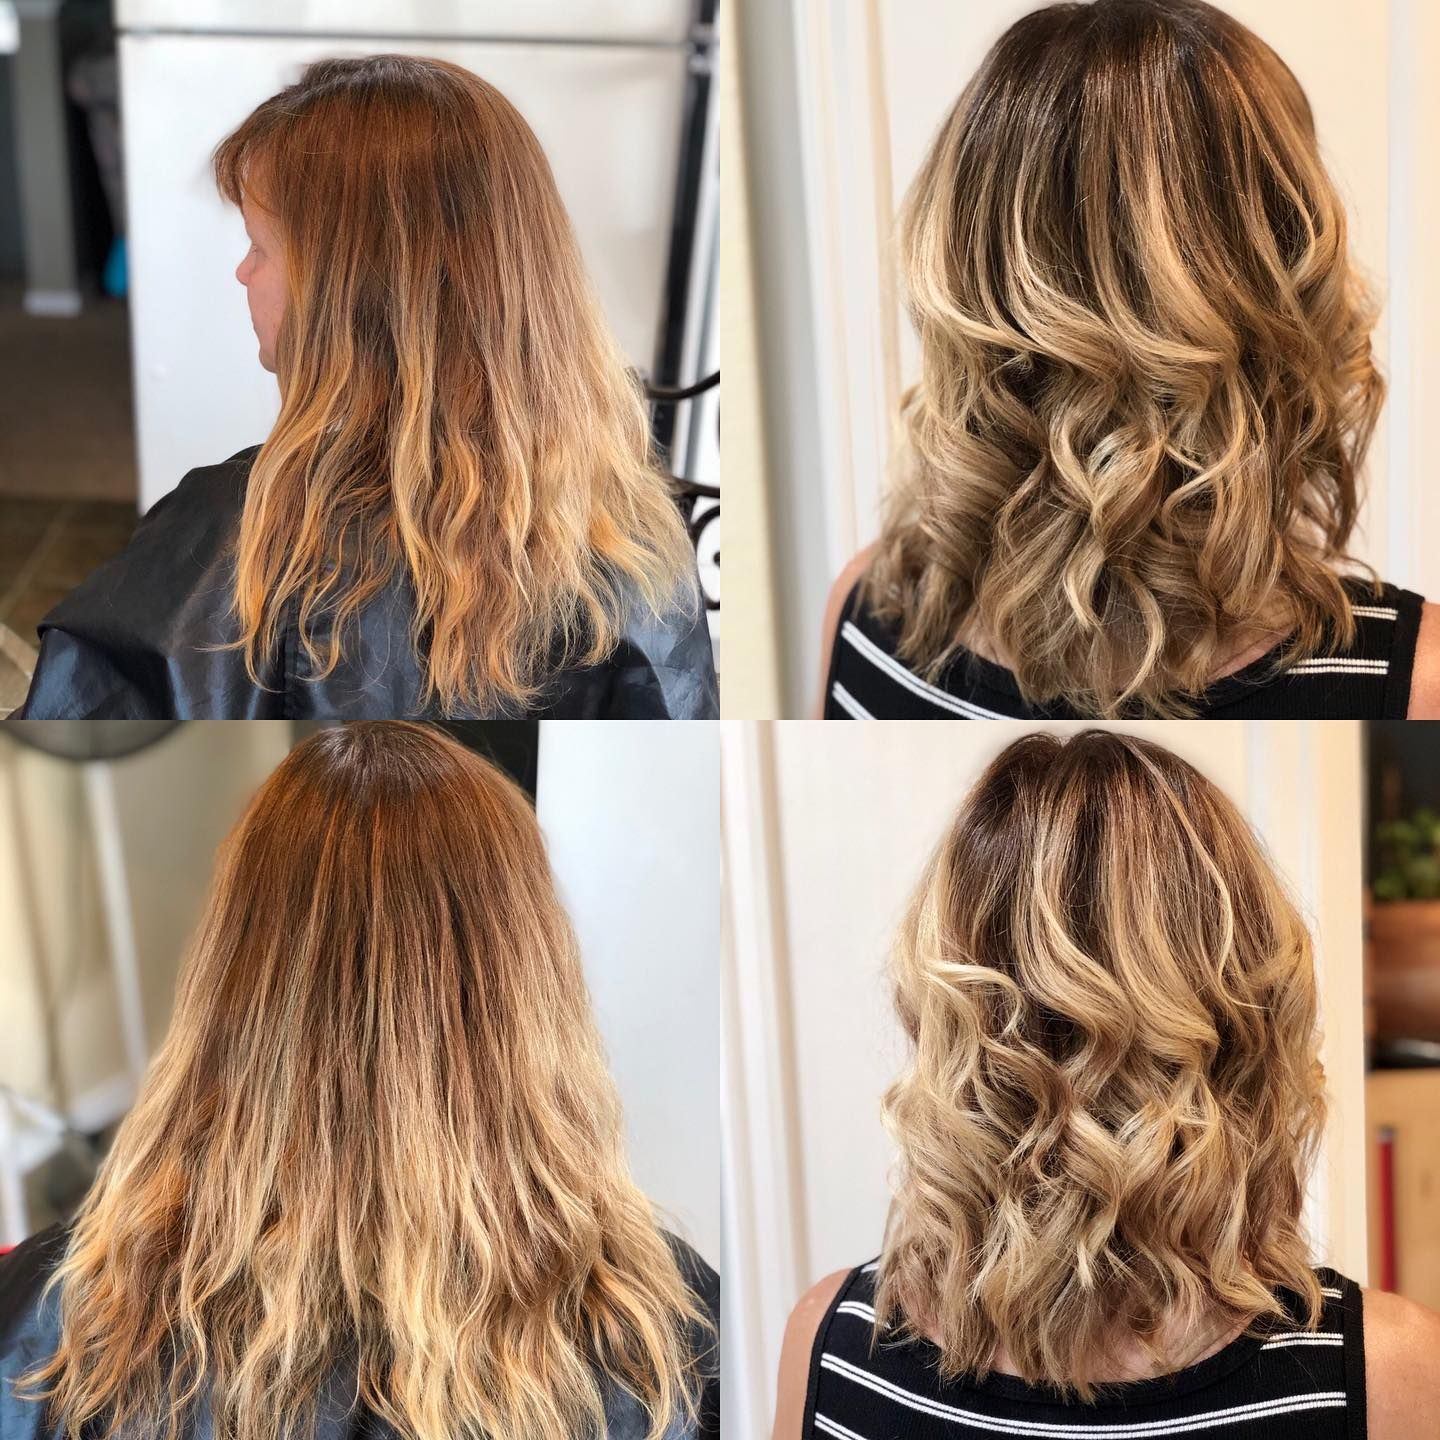 Did My Moms Hair She Needed A Good Trim We Also Retouched The Roots And Touched Up Her Balayage A Little Now She Looking Fabu In 2020 Mom Hairstyles Balayage Hair